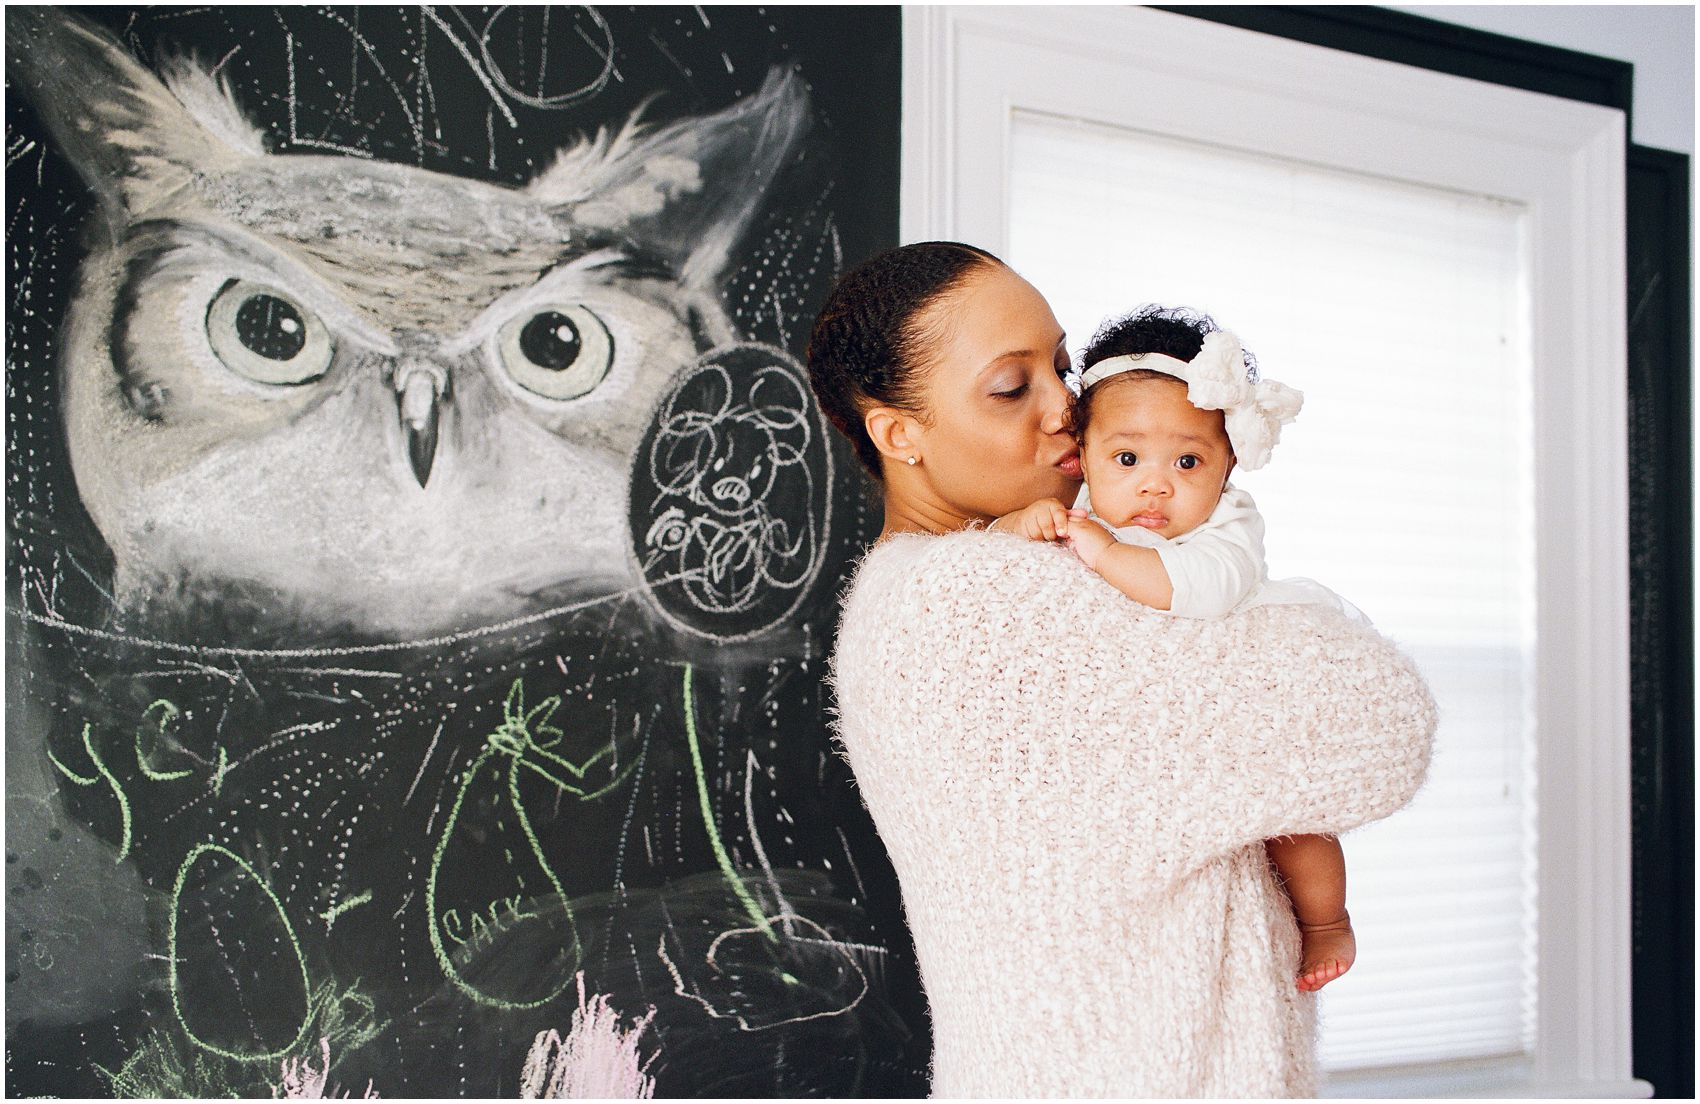 great interior decor during our family photo session at home with baby girl in New York